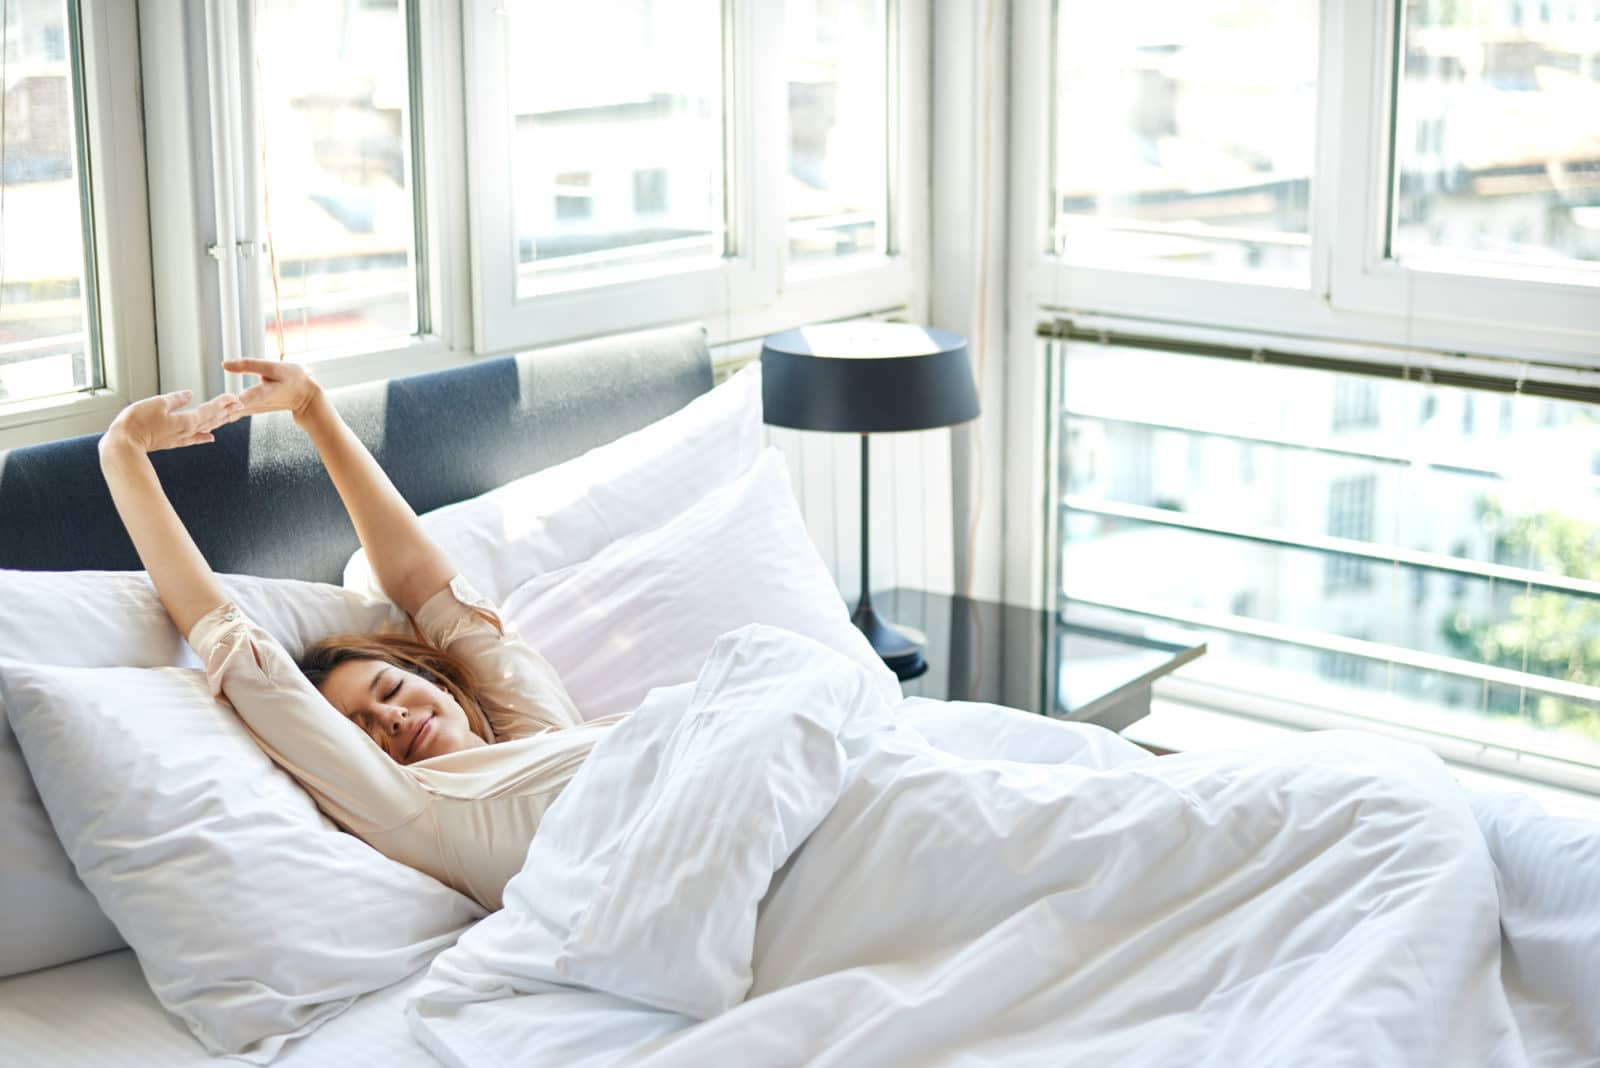 a woman stretching on the bed